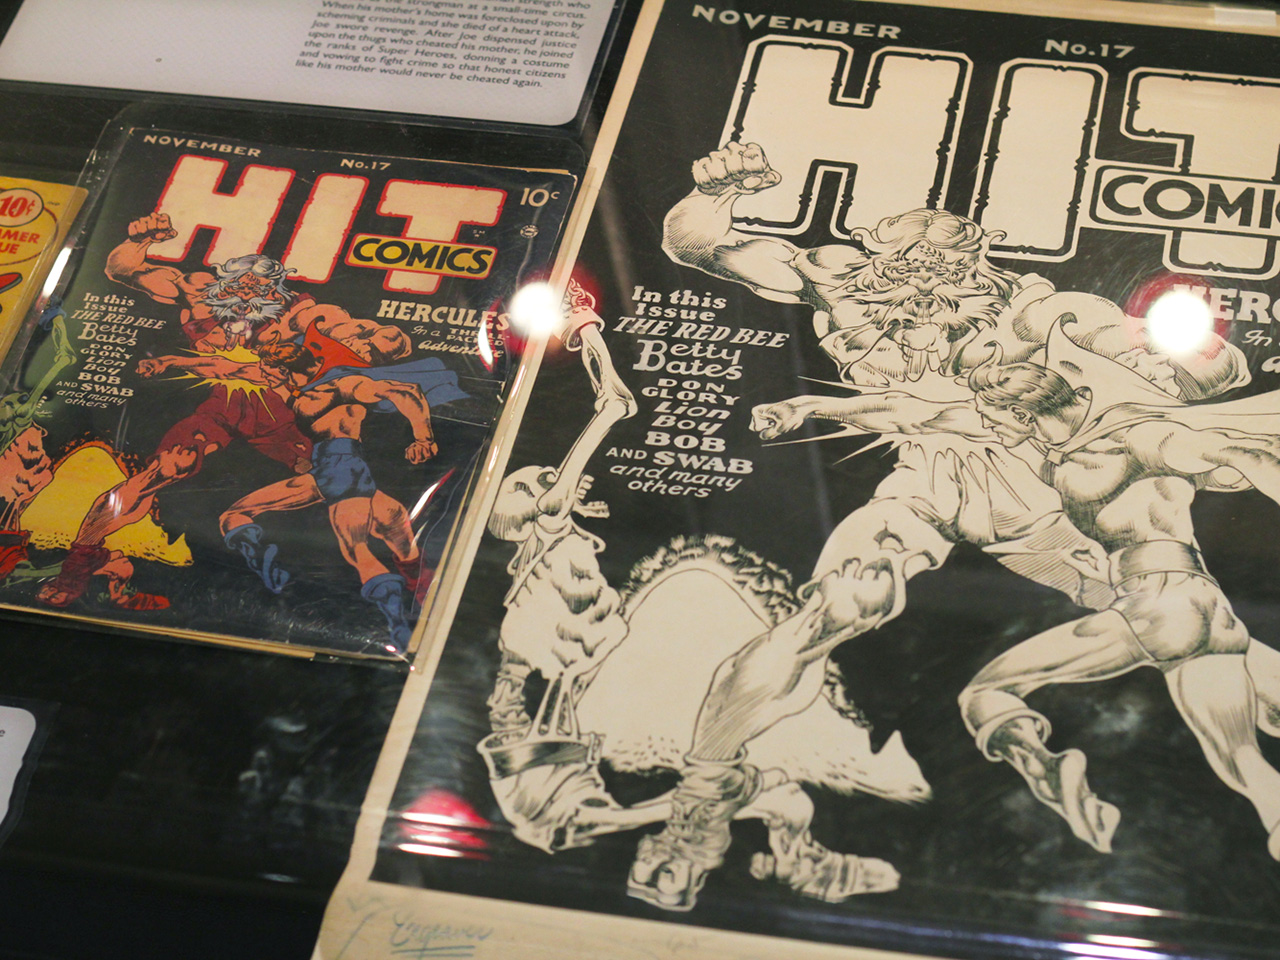 zap pow bam exhibition comic books